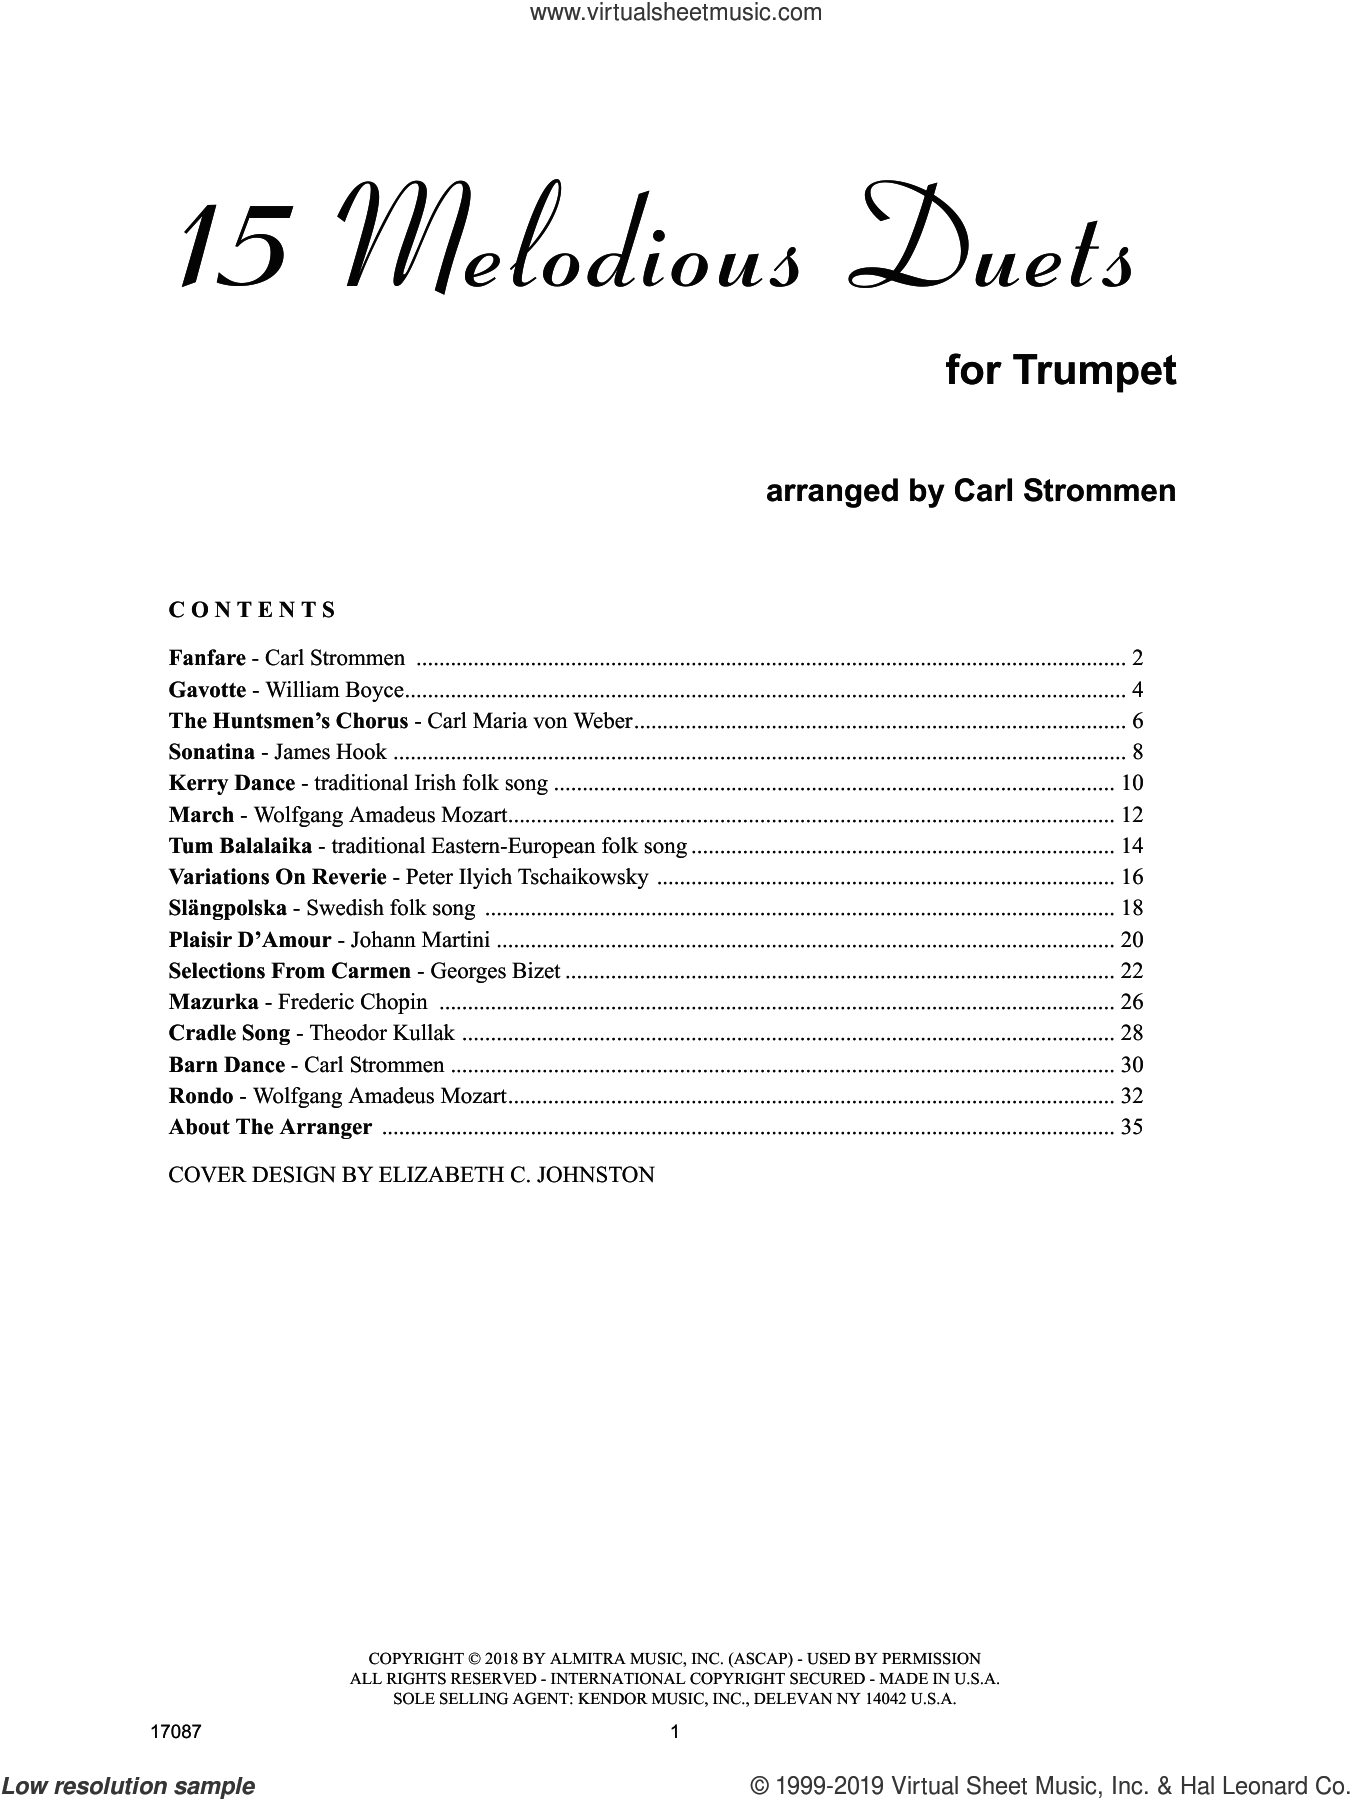 15 Melodious Duets sheet music for two trumpets by Carl Strommen, intermediate duet